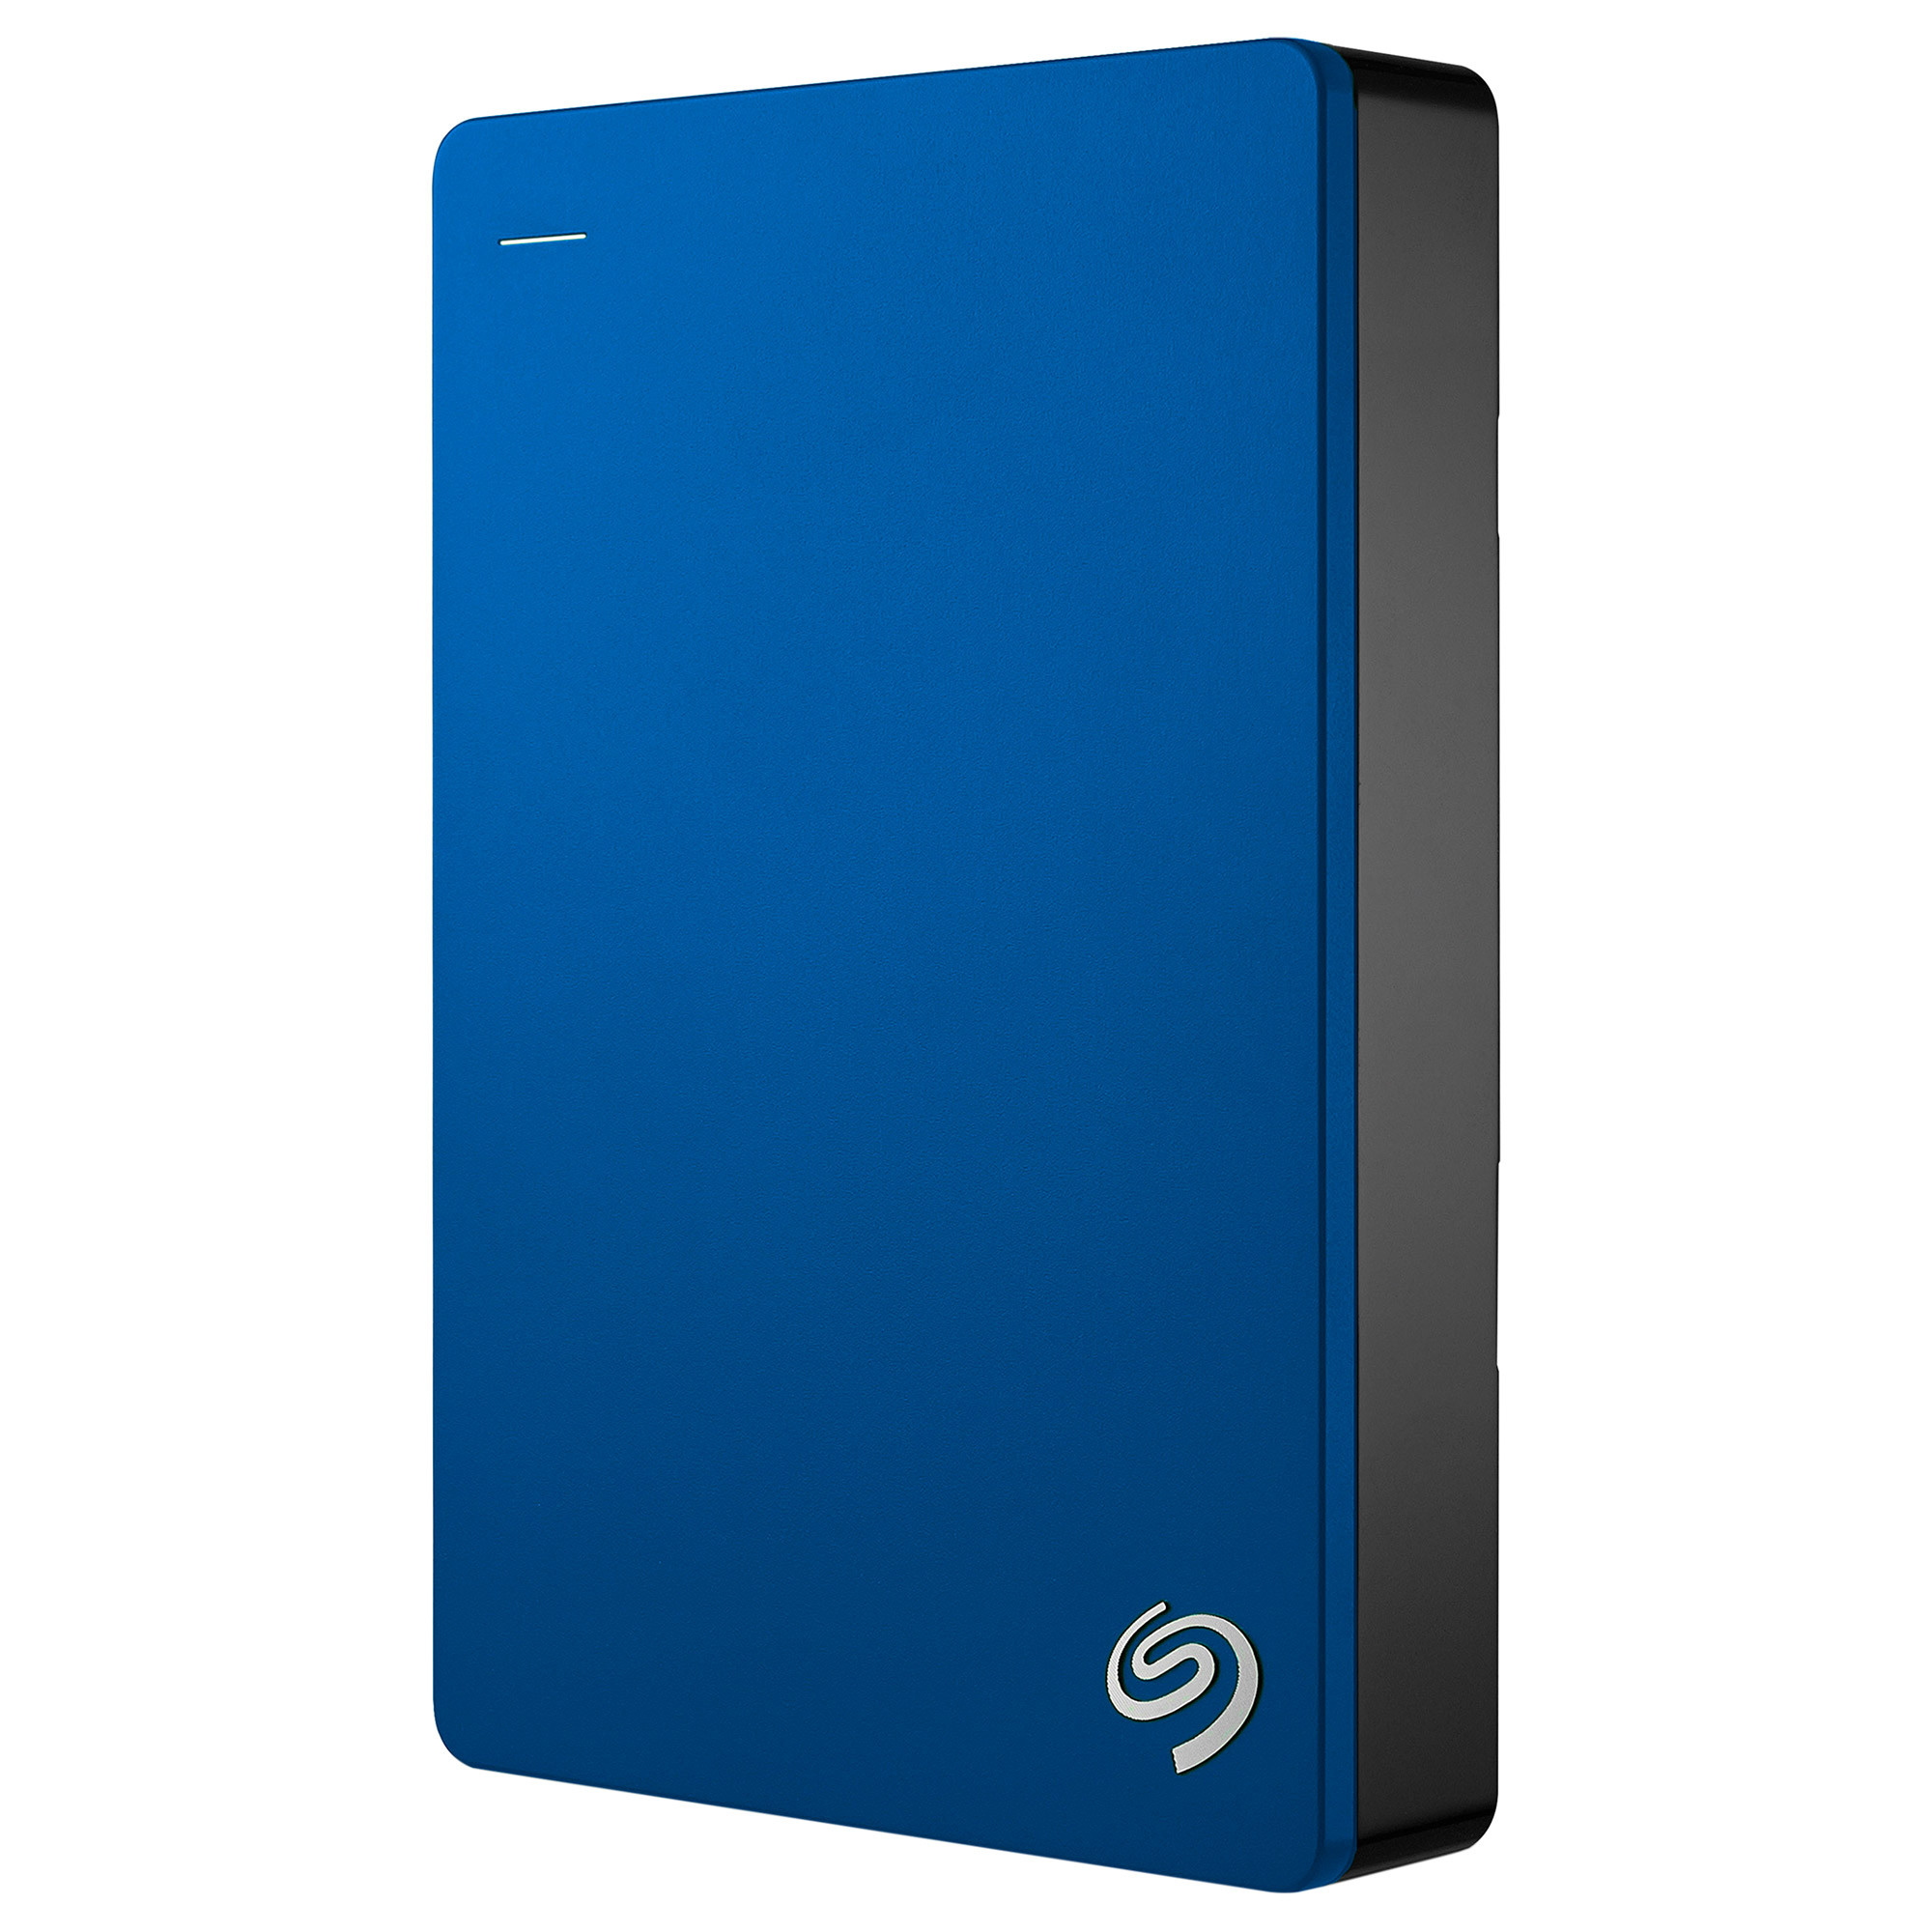 Seagate Backup Plus 4TB Portable Hard Drive with Rescue and Replace